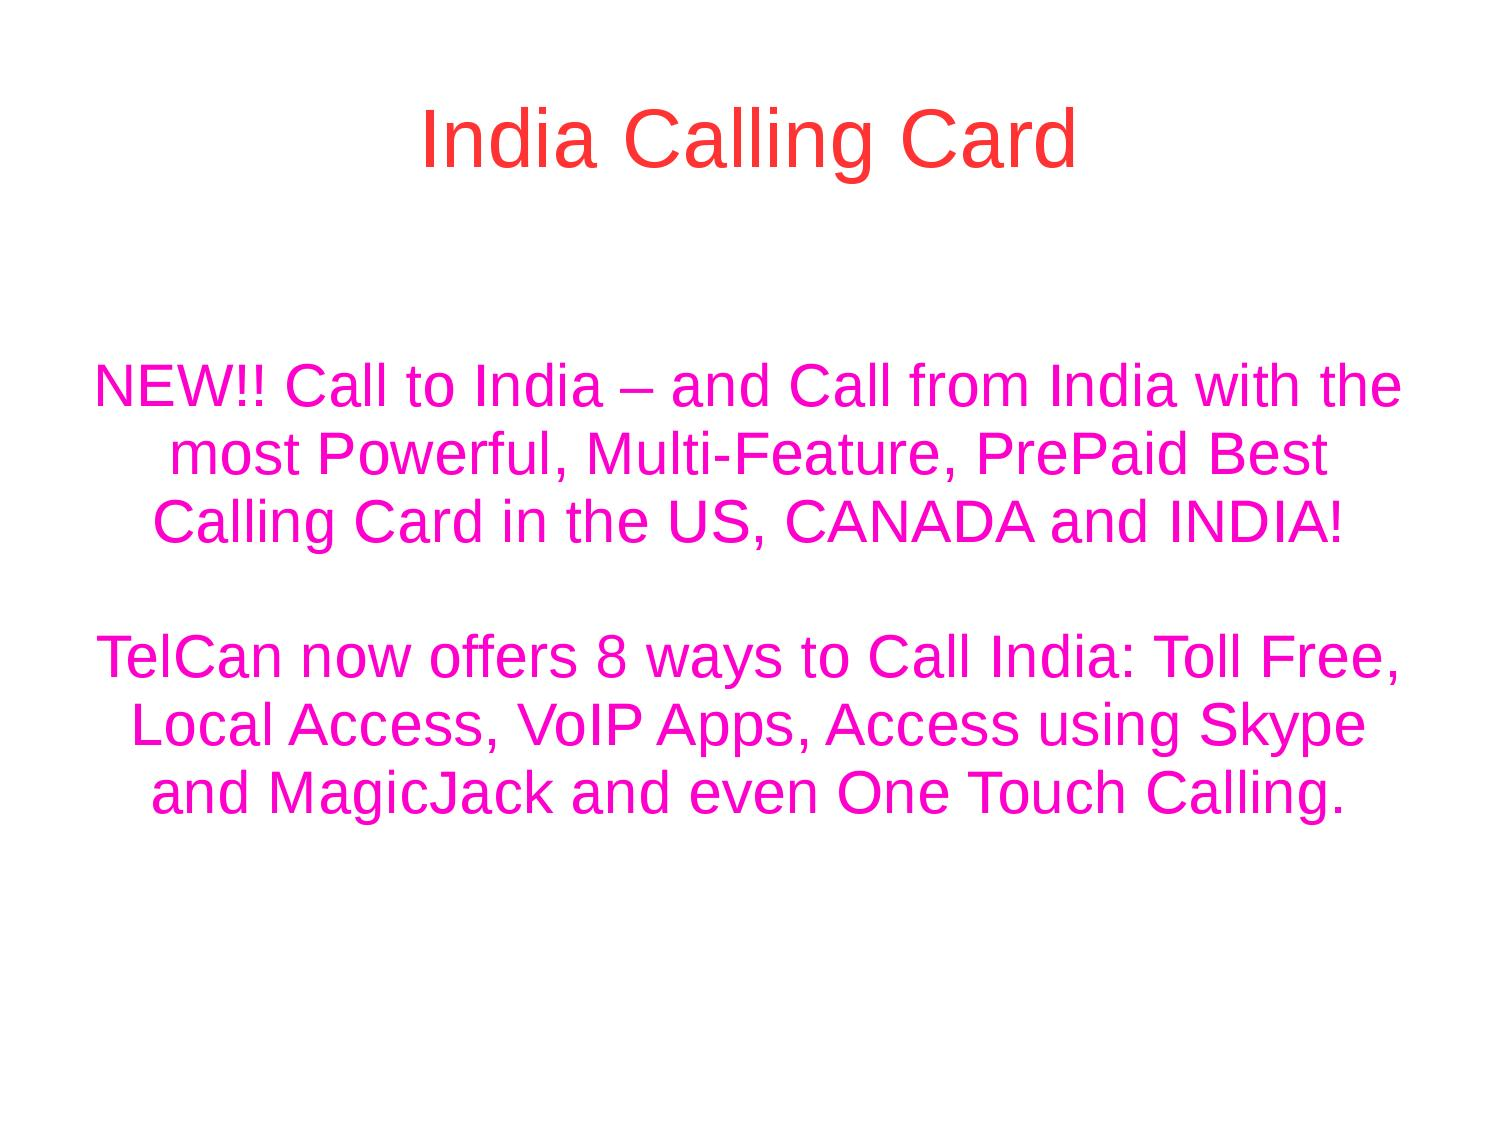 india calling cards by telcan pvt ltd issuu - India Calling Card